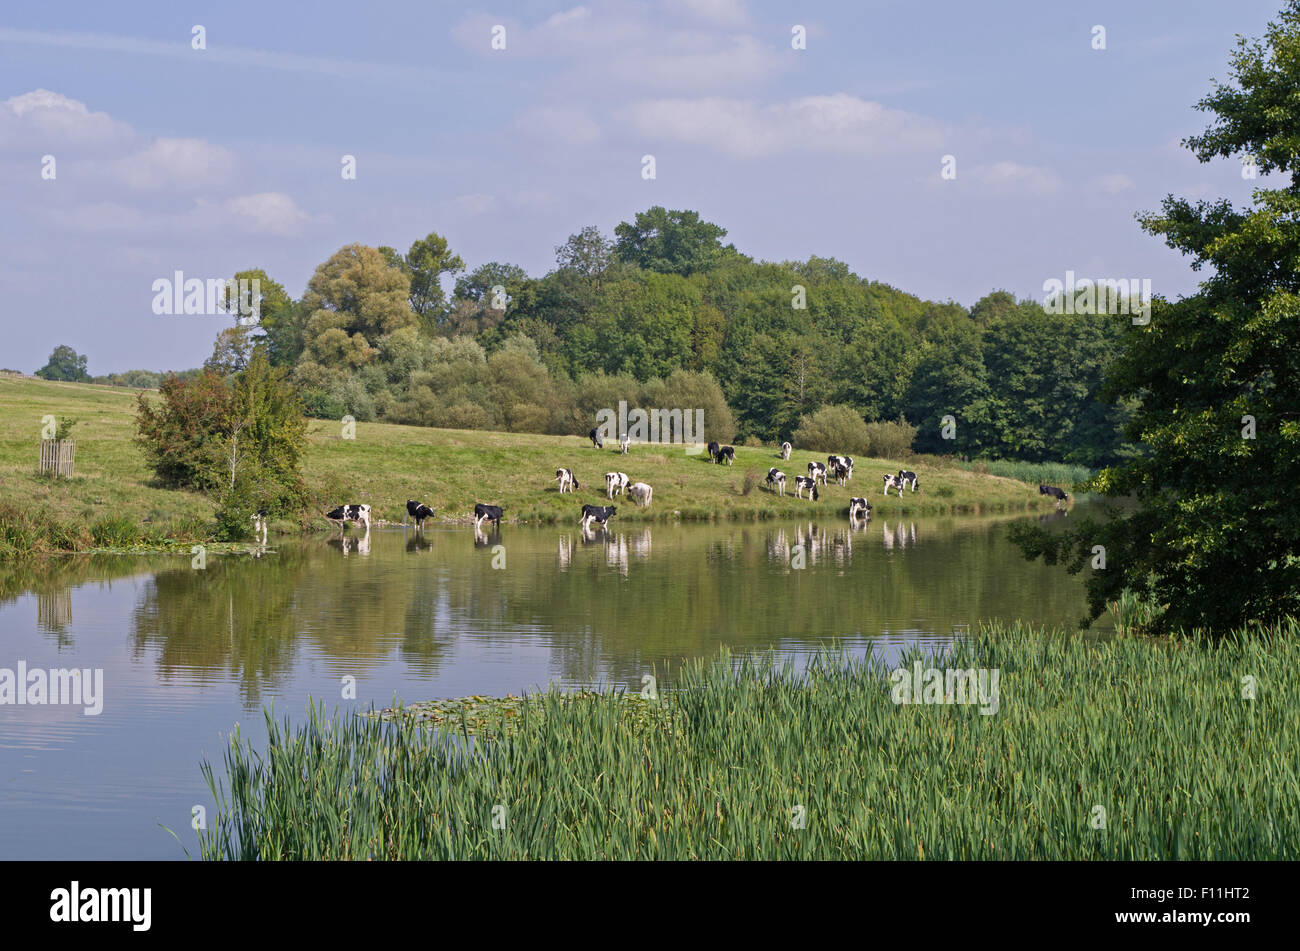 Cattle grazing by the lake in the grounds of Compton Verney House, Warwickshire - Stock Image